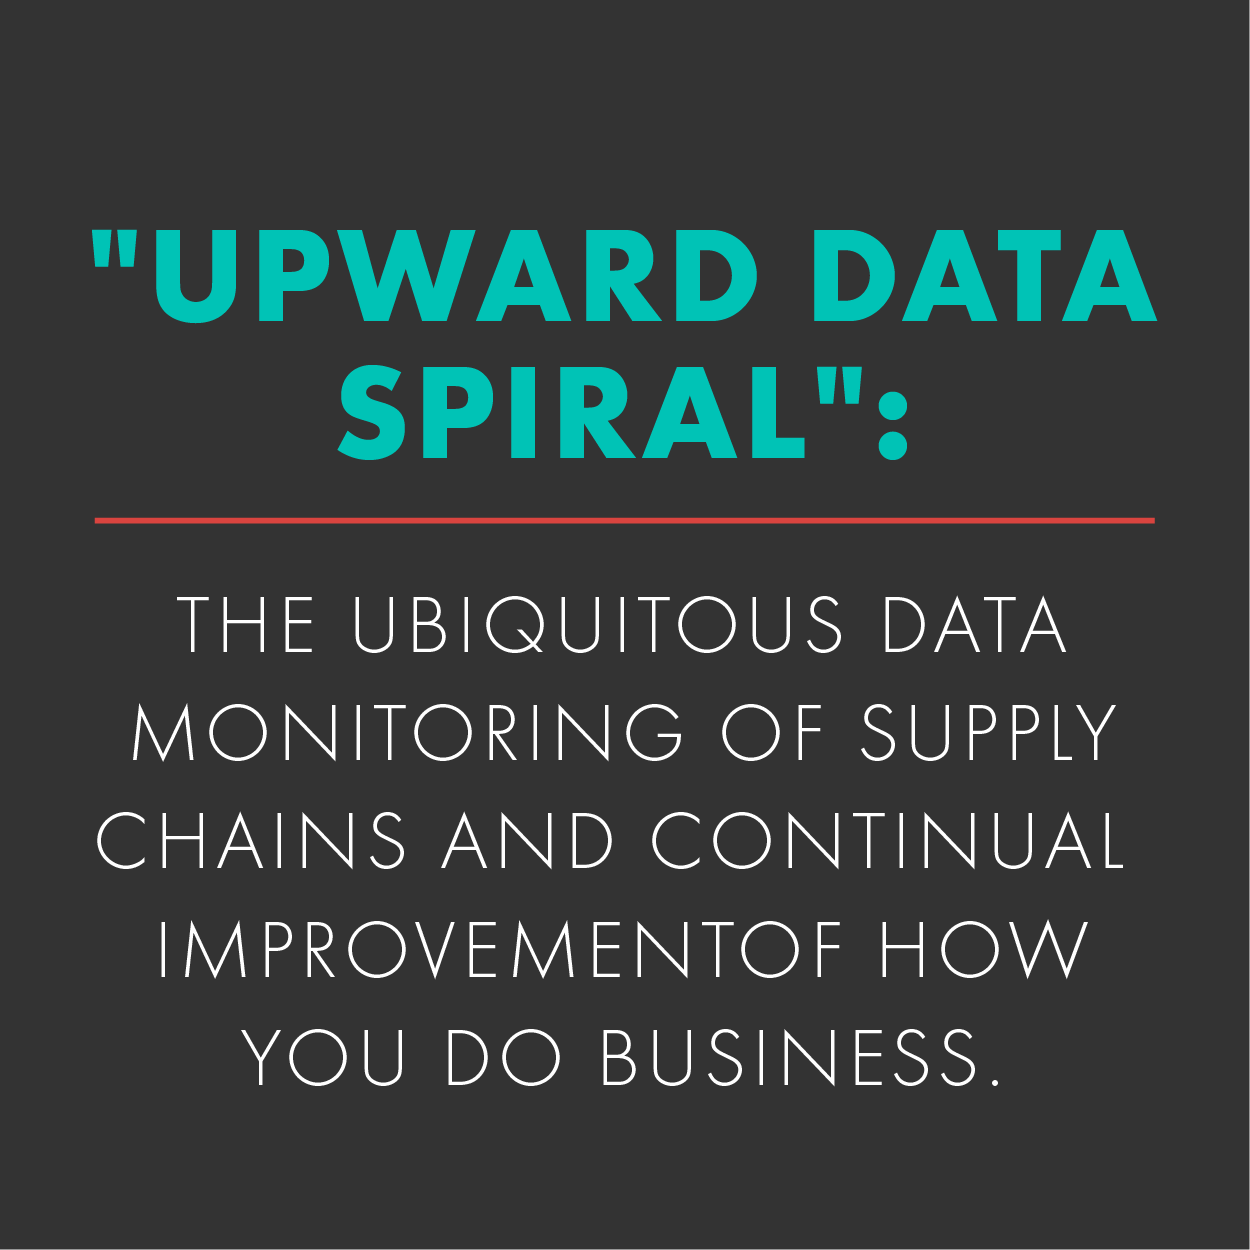 DiCentral Future of B2bi and Enterprise Resource Planning, Upward Data spiral